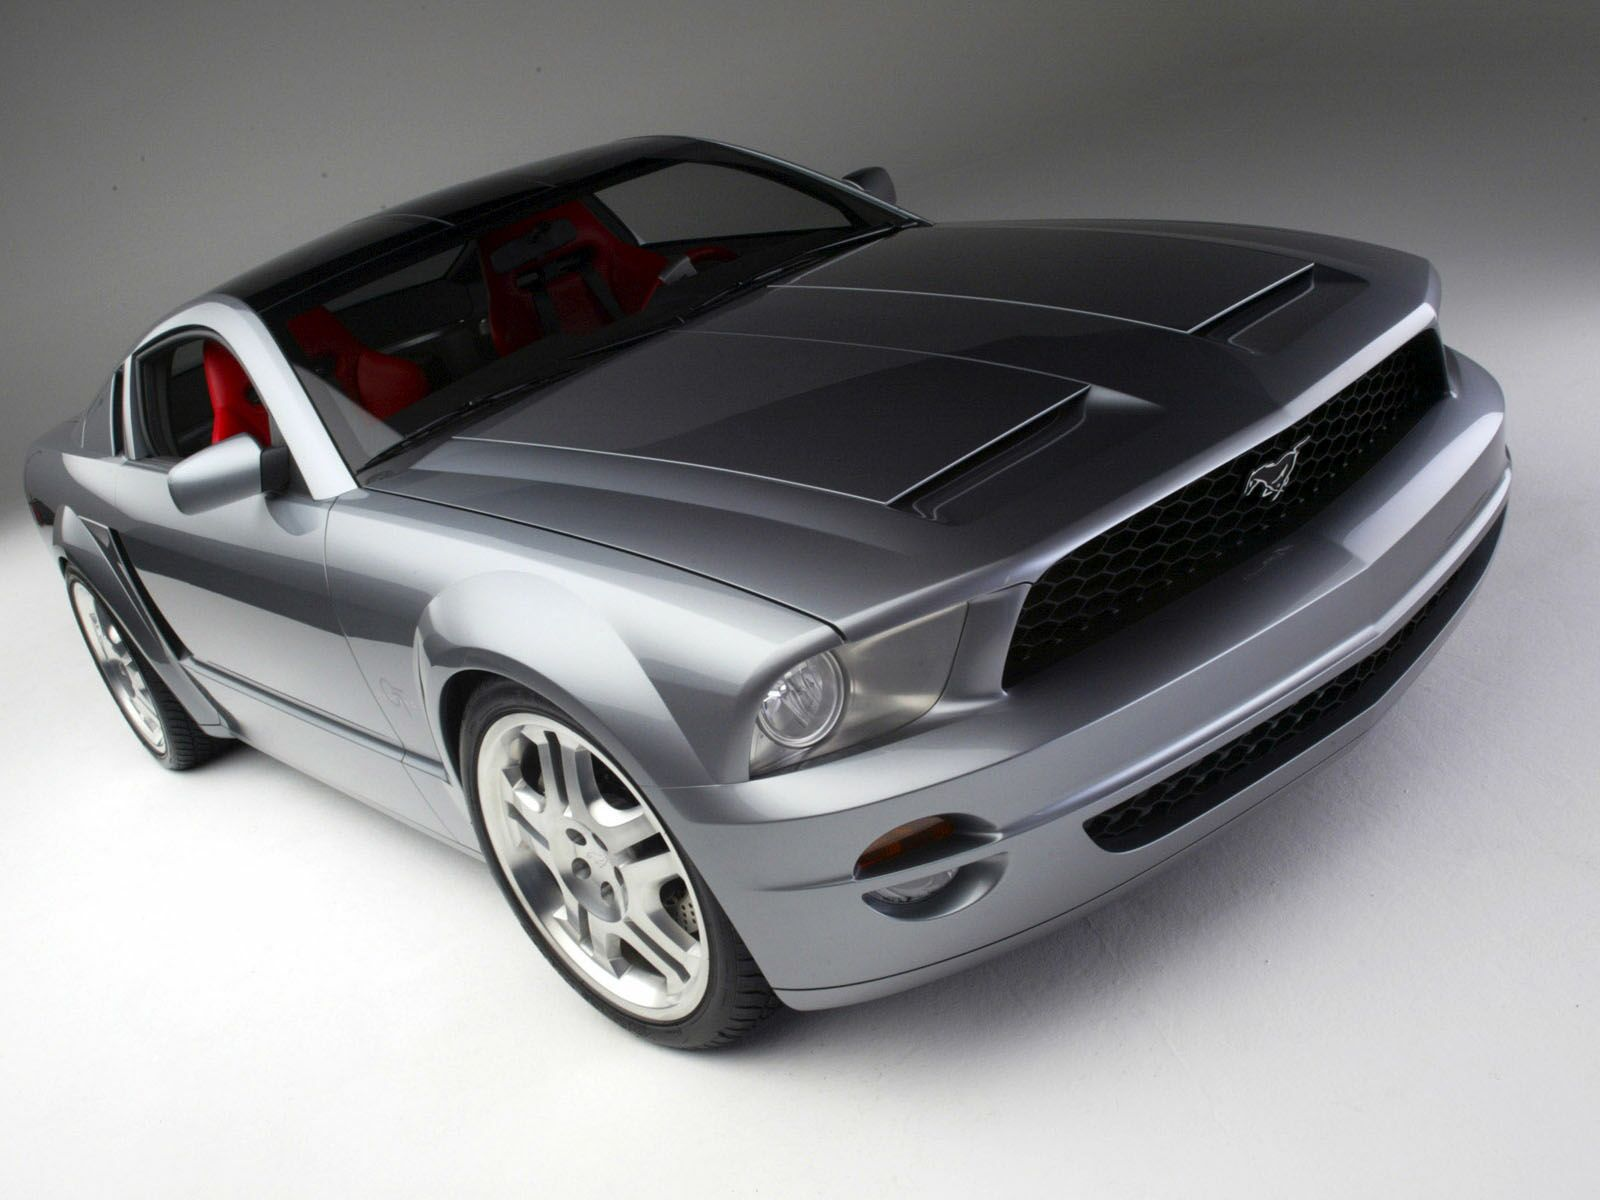 Ford Escape Hybrid For Sale >> The world sports cars: ford mustang gt